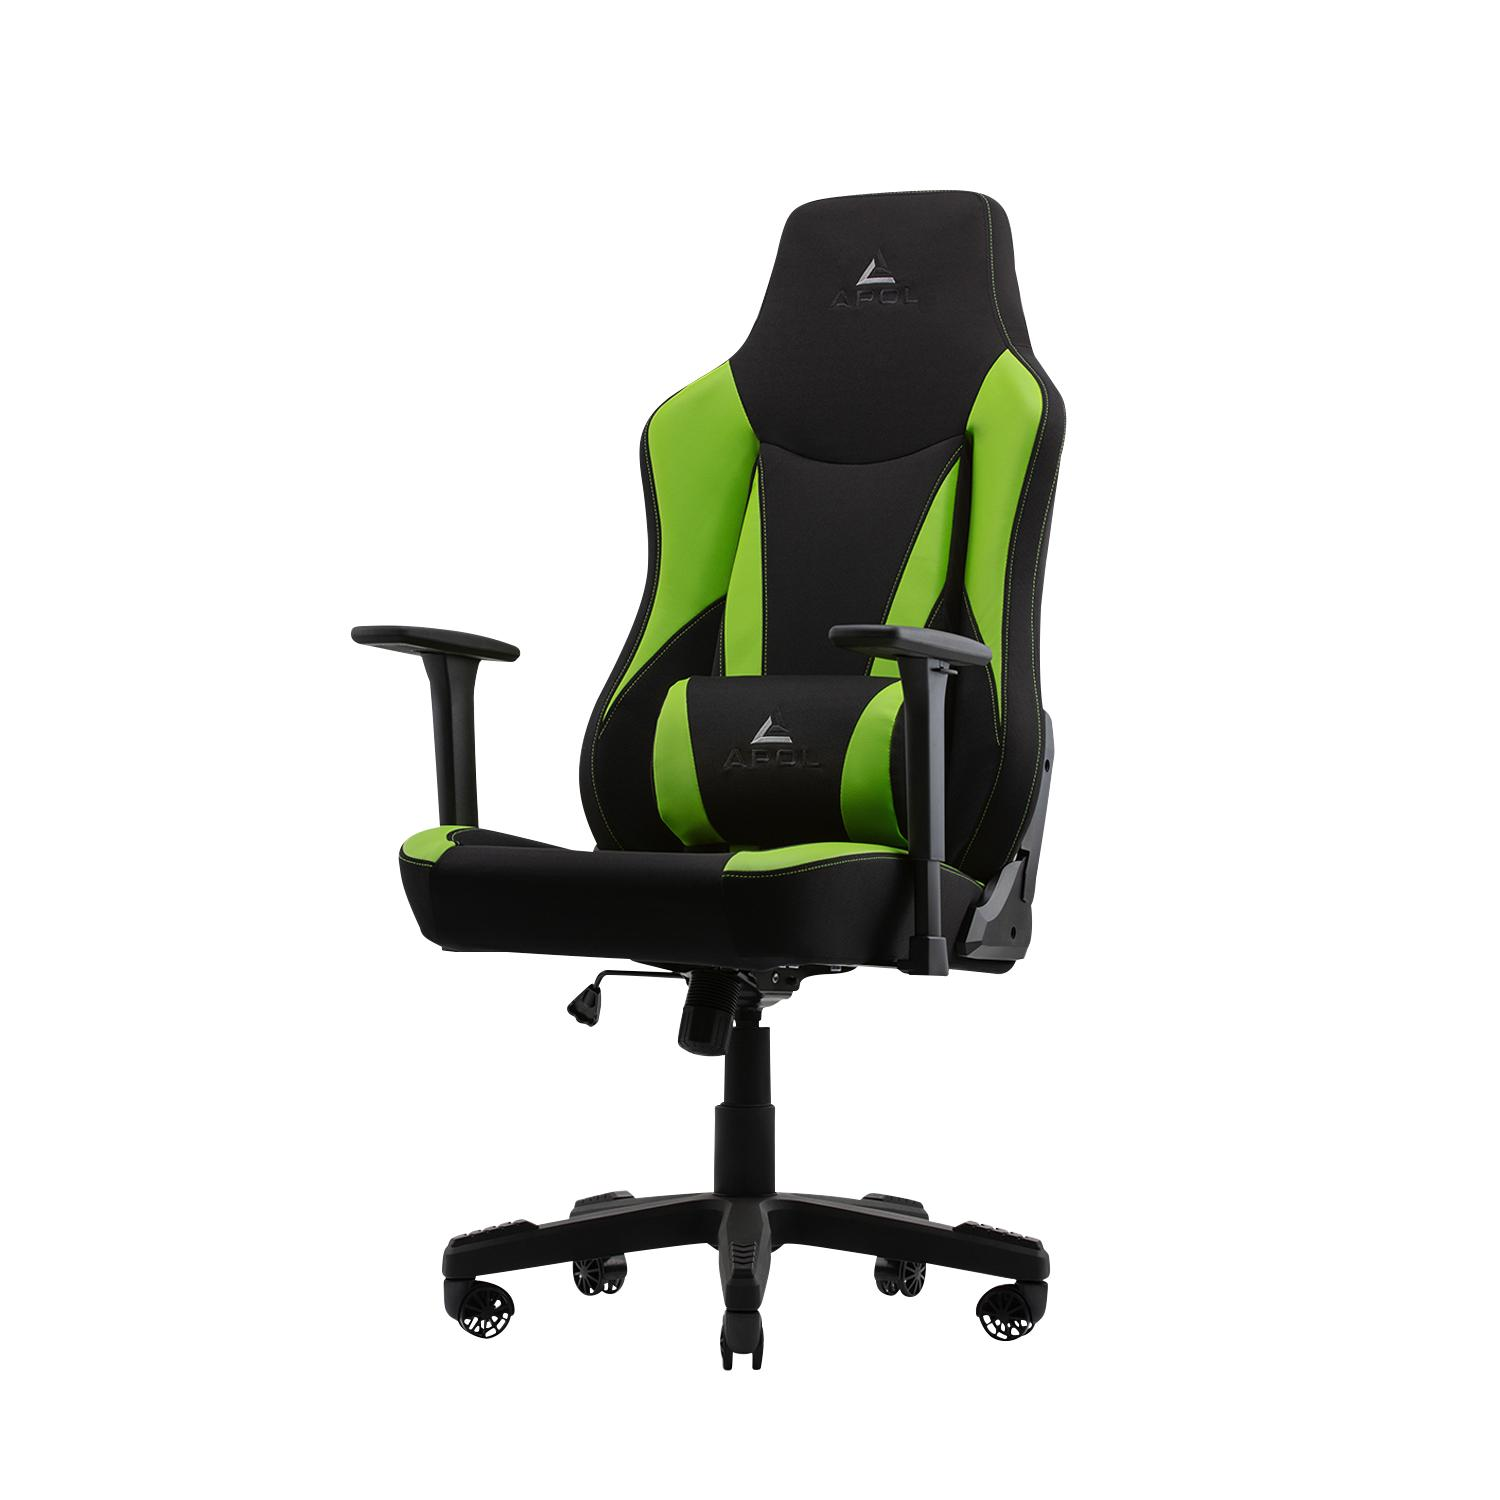 APOL Singapore Classic III / Gaming Chairs